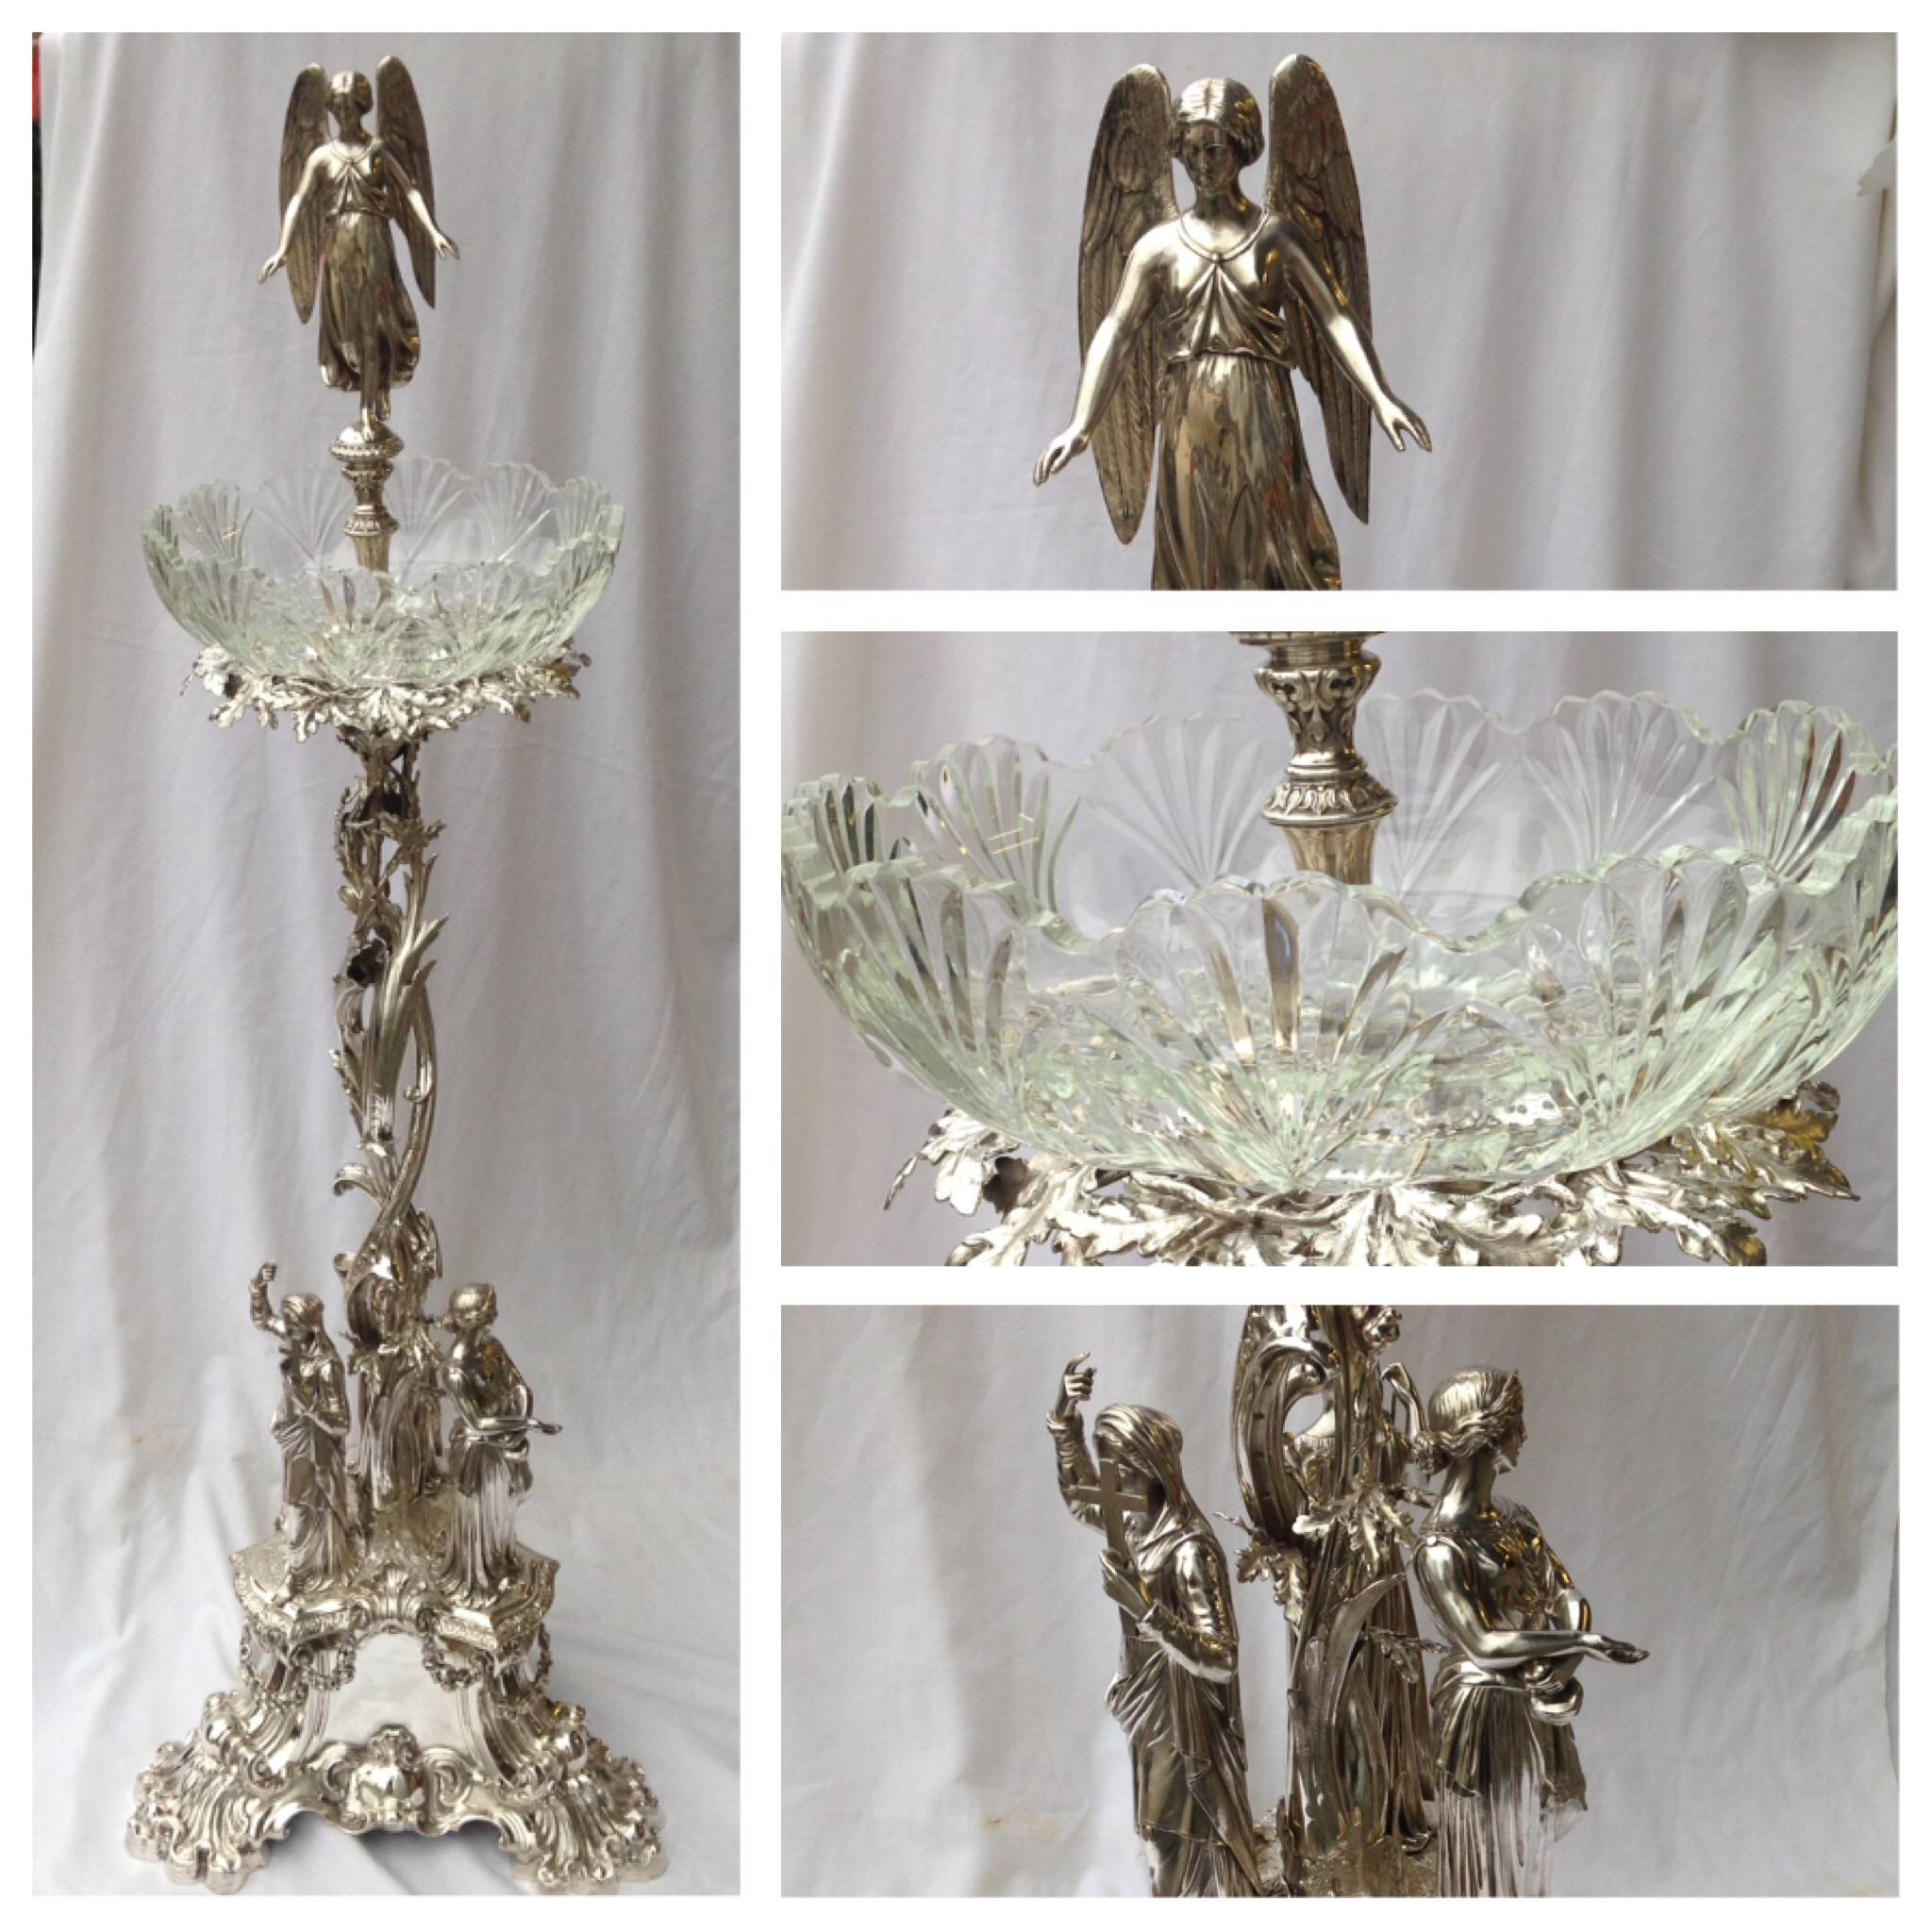 Stunning large silver epergne with a bespoke glass bowl hand-cut